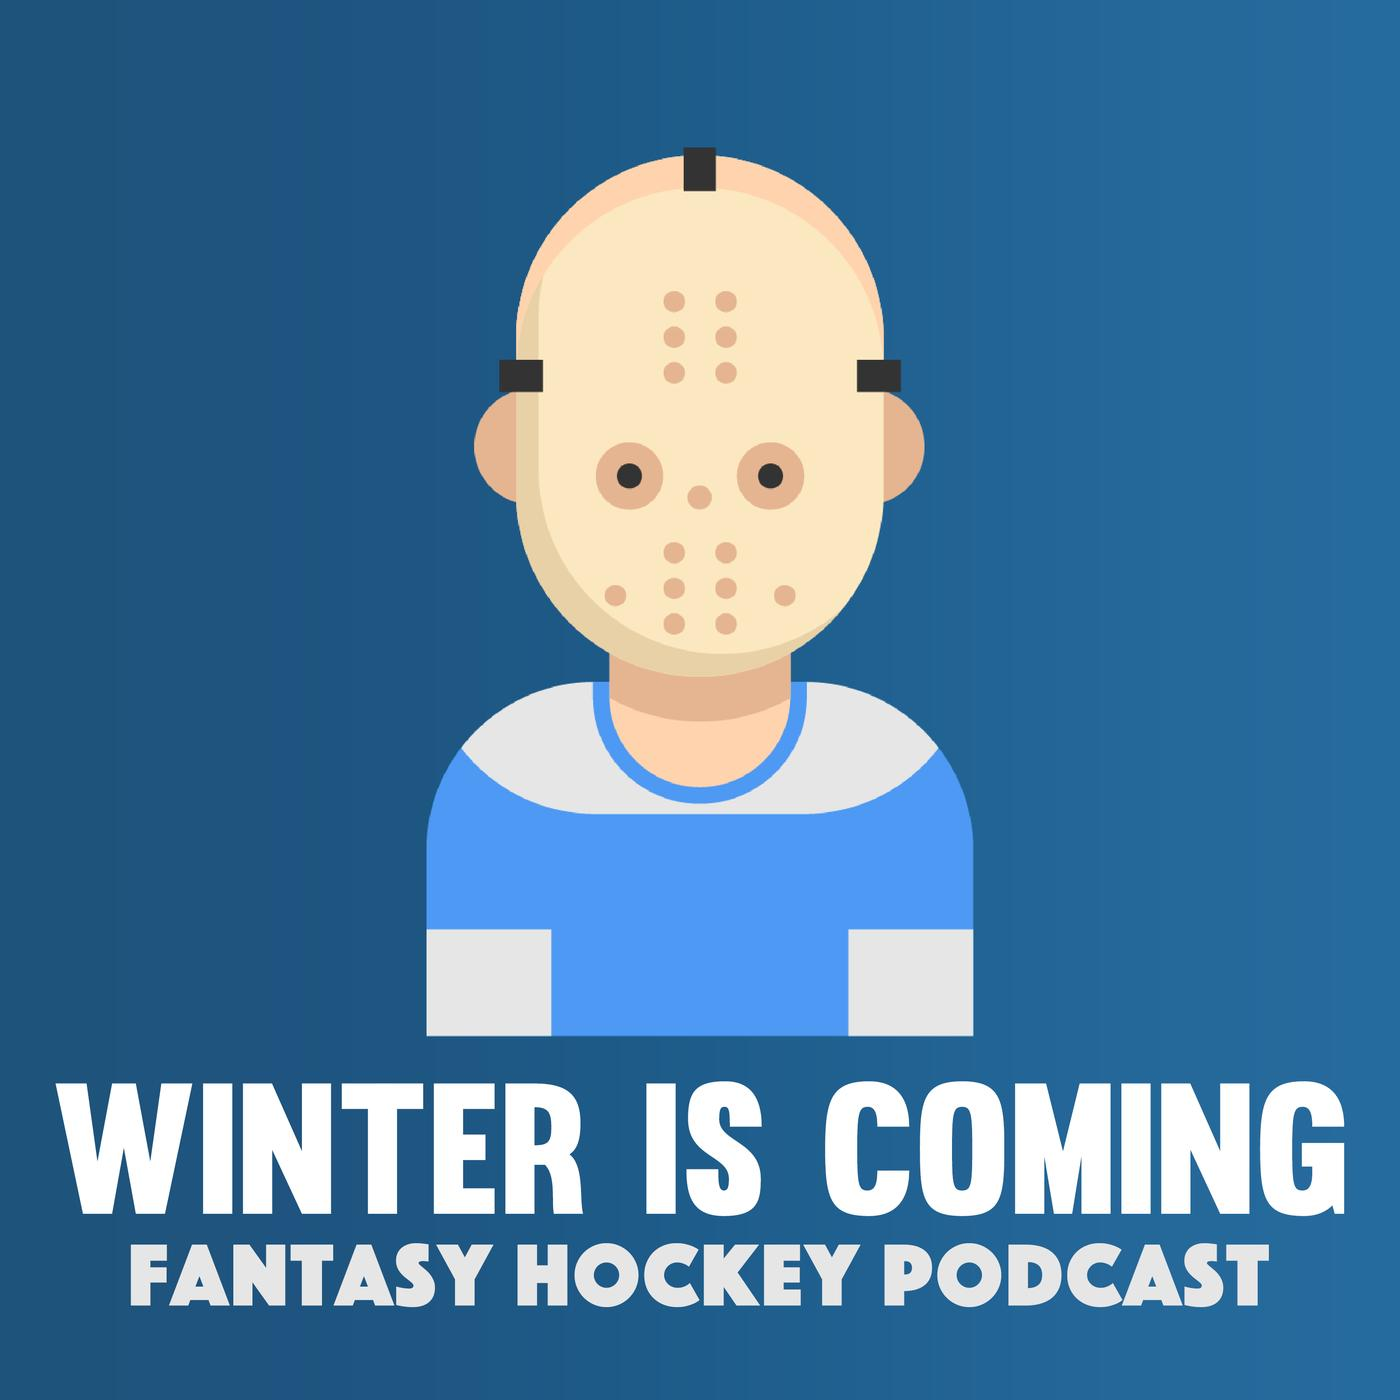 Bangg Bros nov 29 - bang bros. - winter is coming - fantasy hockey